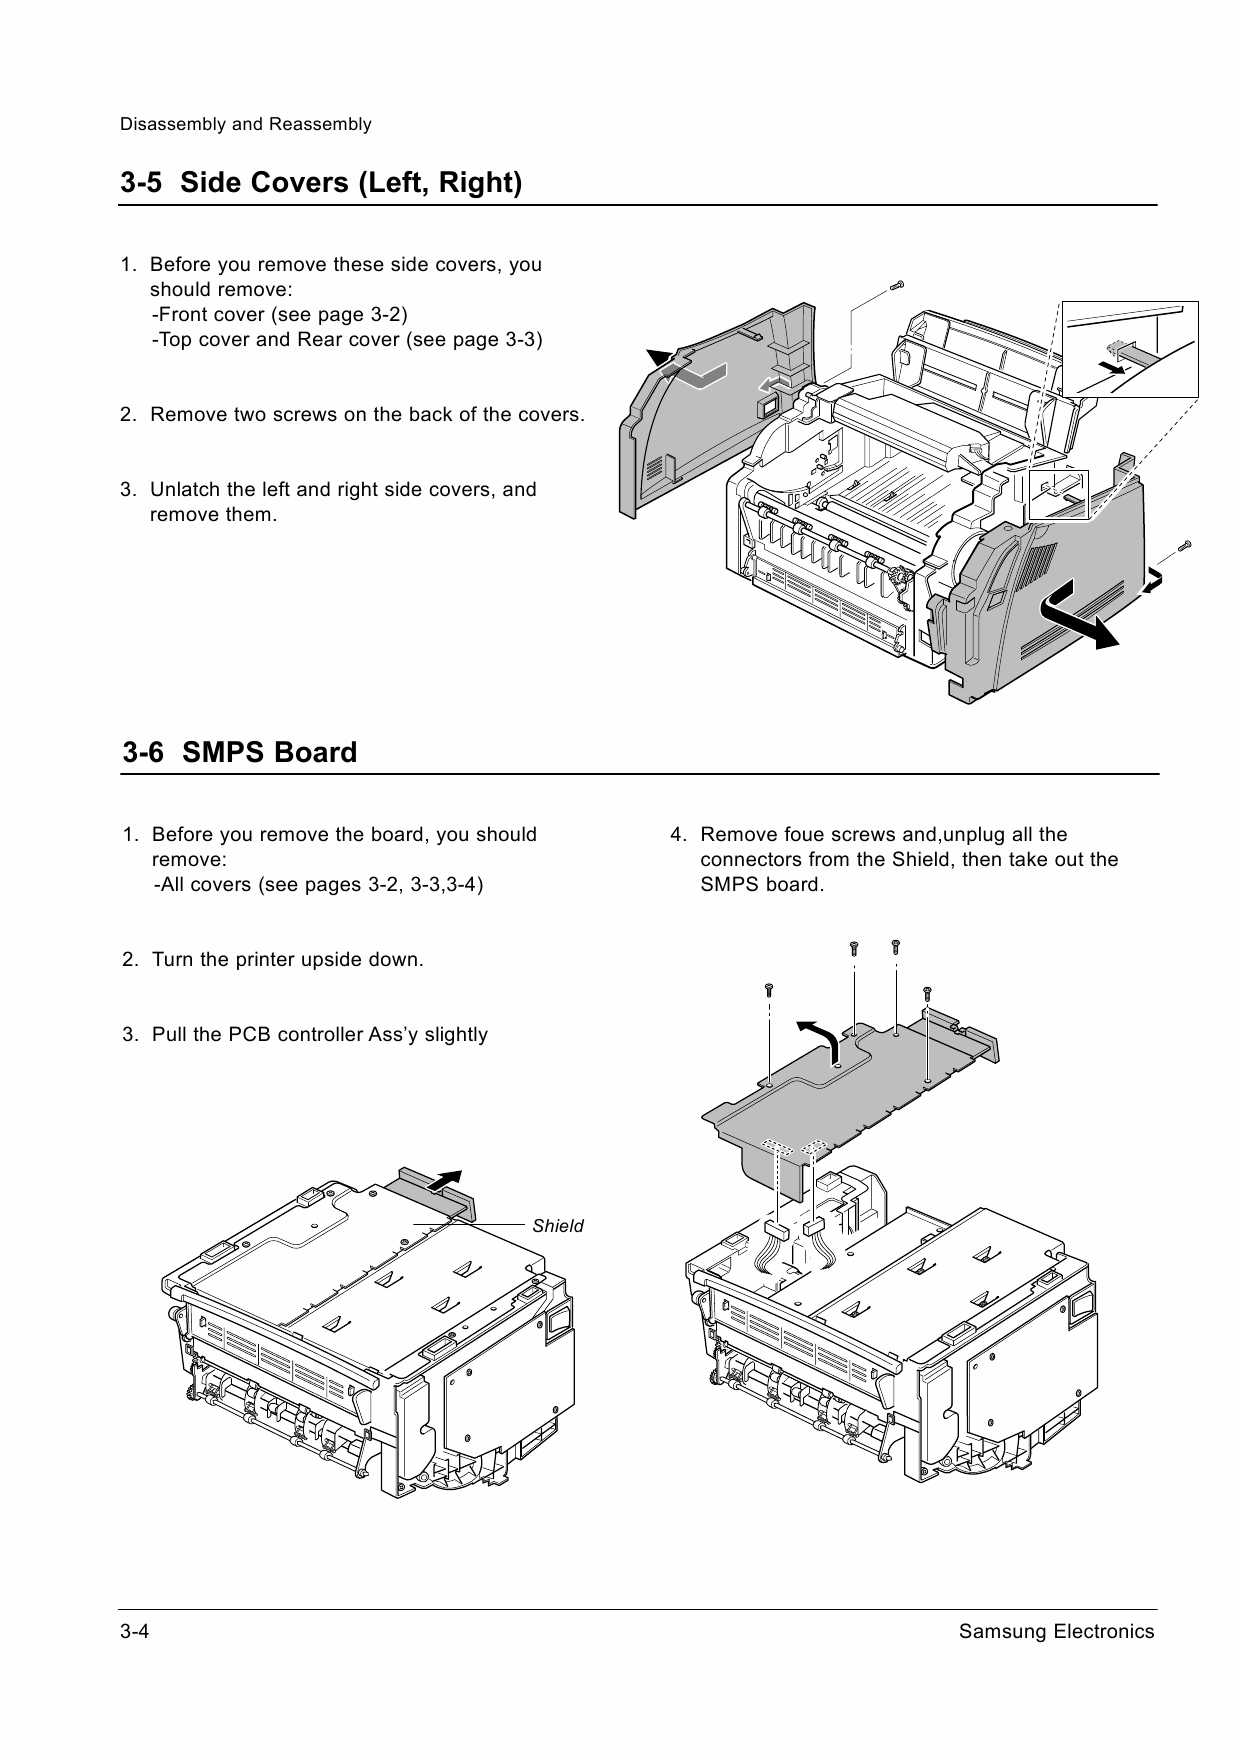 Samsung Laser-Printer ML-5200A Parts and Service Manual